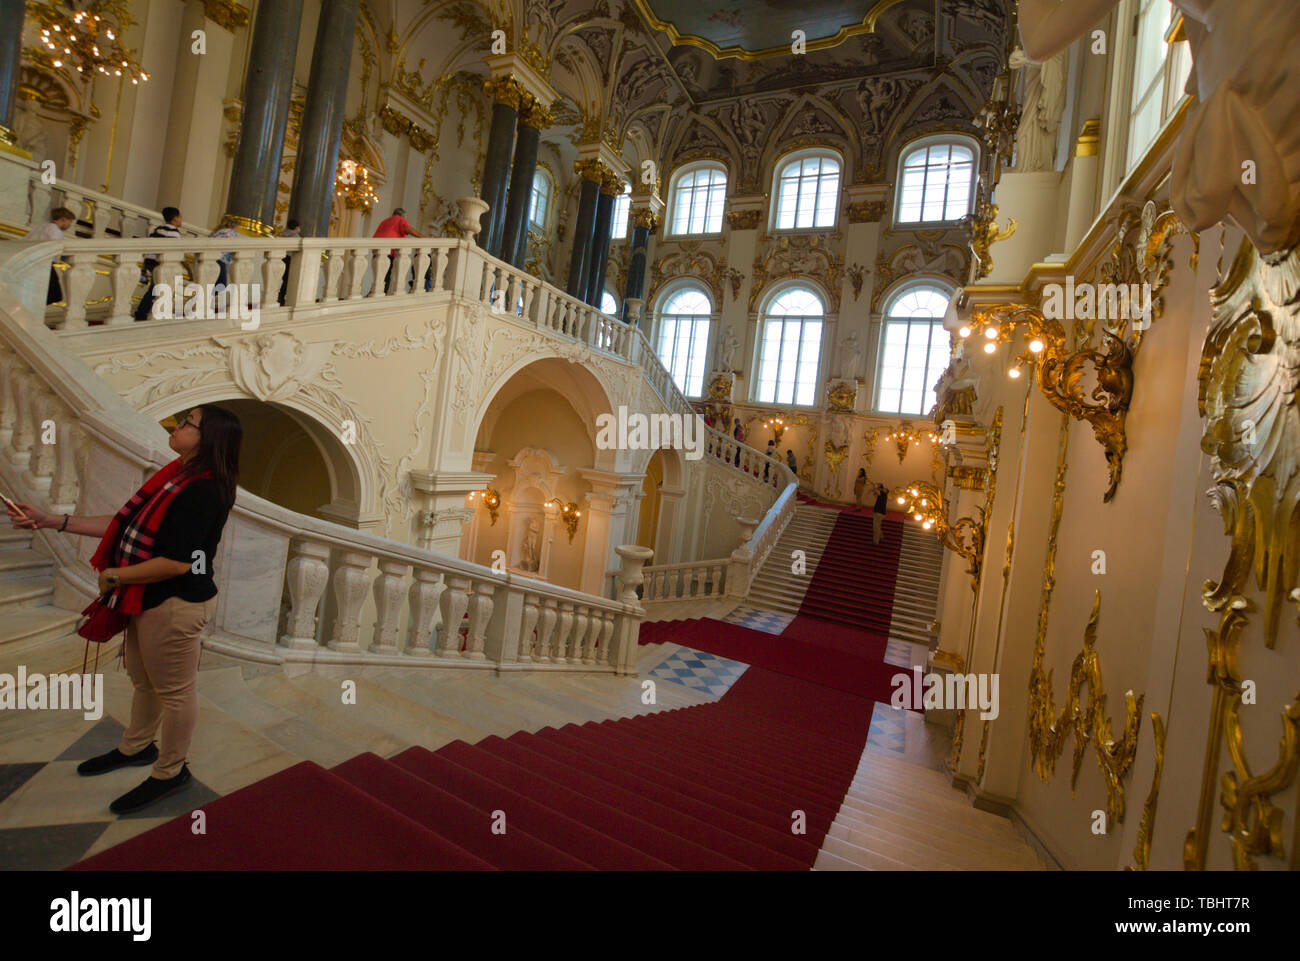 The Winter Palace of the State Hermitage Museum, St. Petersburg, Russia Stock Photo